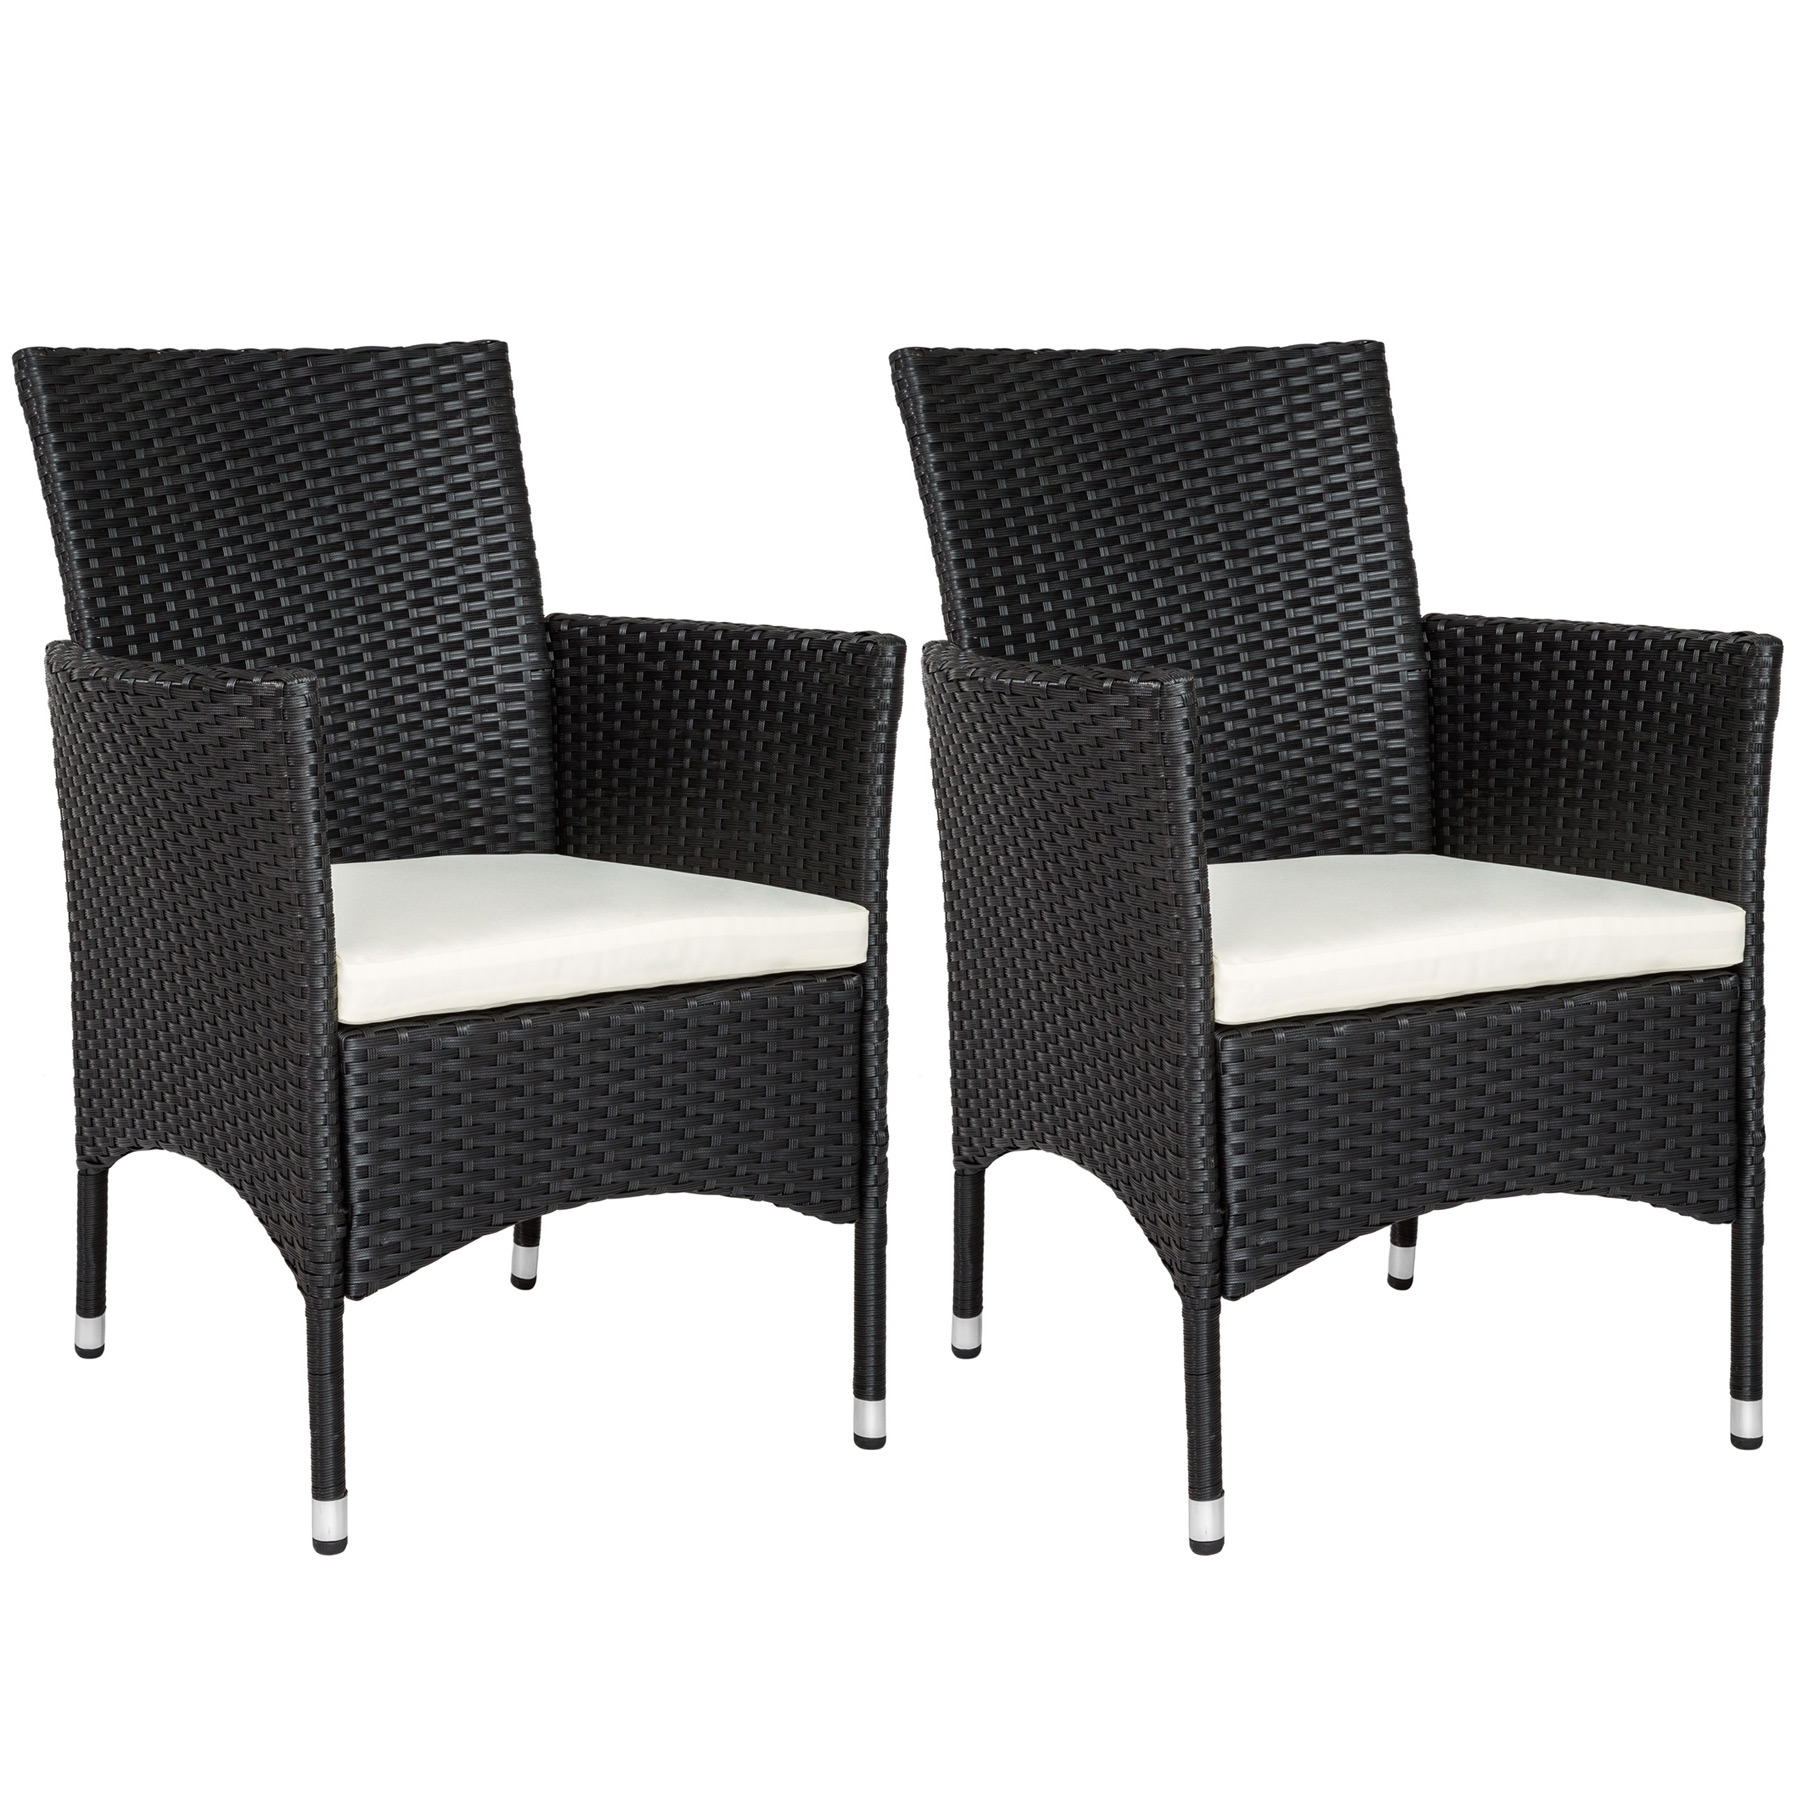 2er set polyrattan st hle gartenstuhl sessel rattanstuhl stuhl schwarz b ware ebay. Black Bedroom Furniture Sets. Home Design Ideas